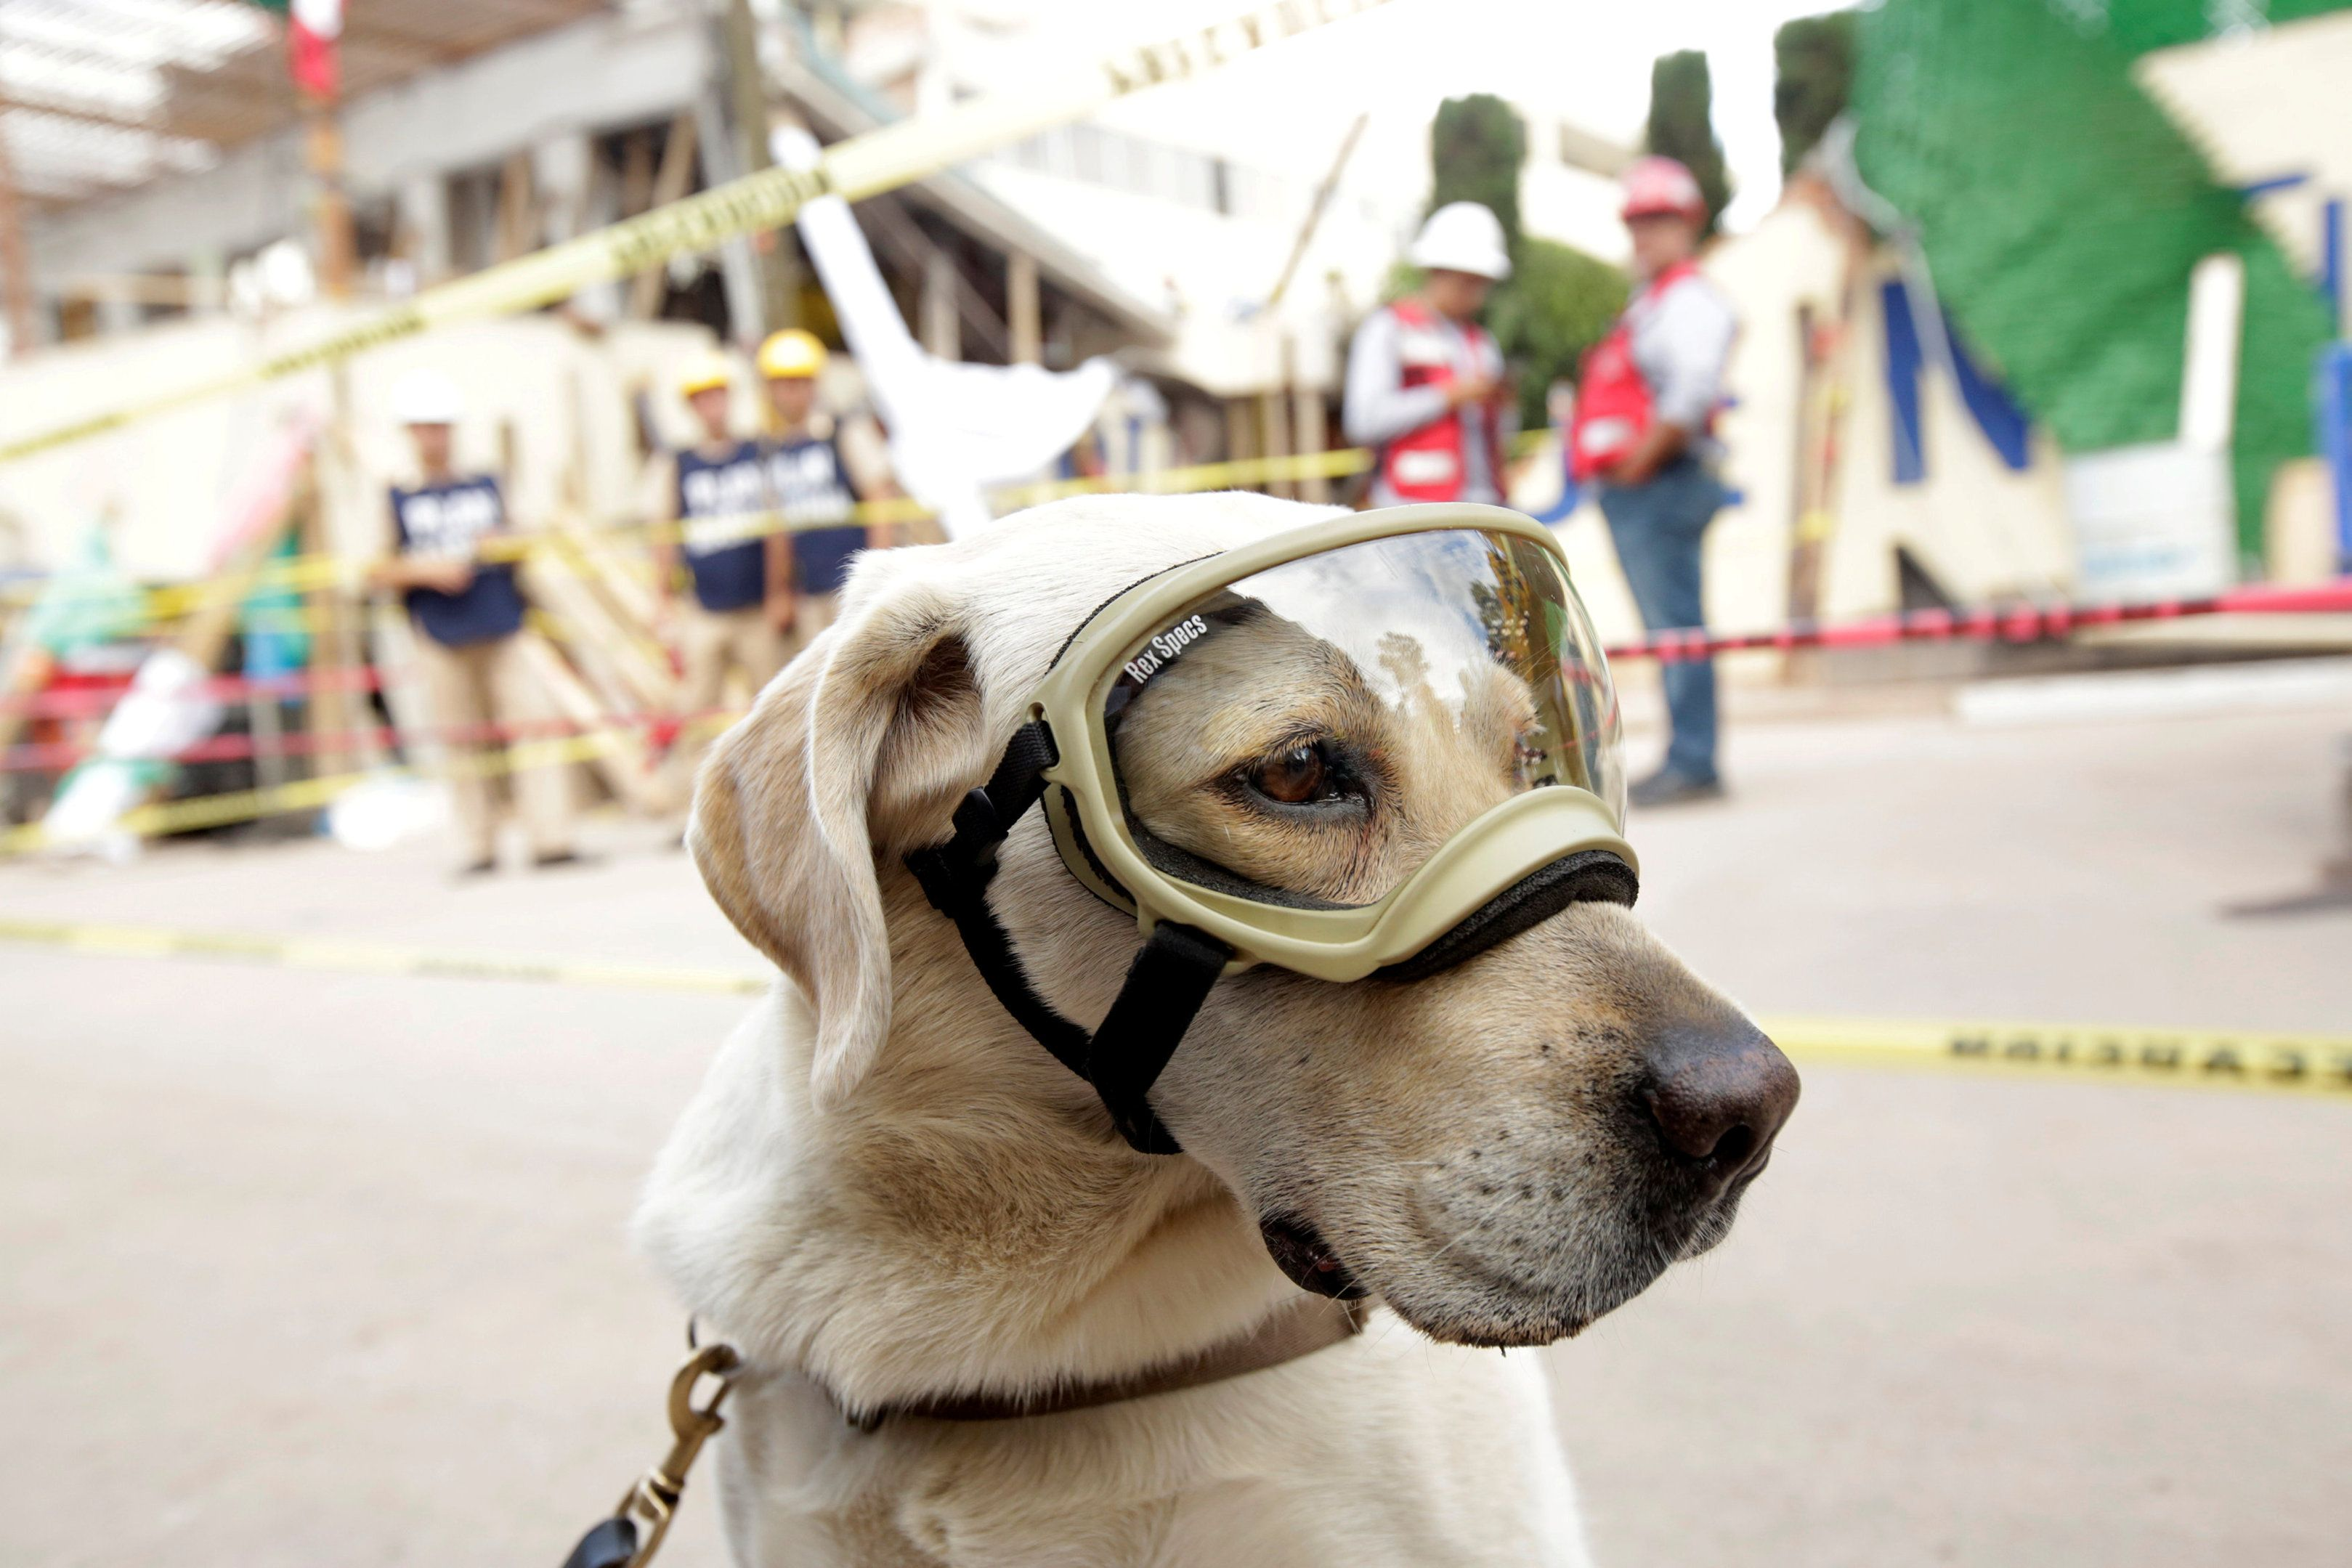 Rescue Dog Frida Looks On While Working After An Earthquake In Mexico City Mexico September 22 2017 Reuters Jose Luis Gonzalez Rescue Dogs Dogs Dog Friends